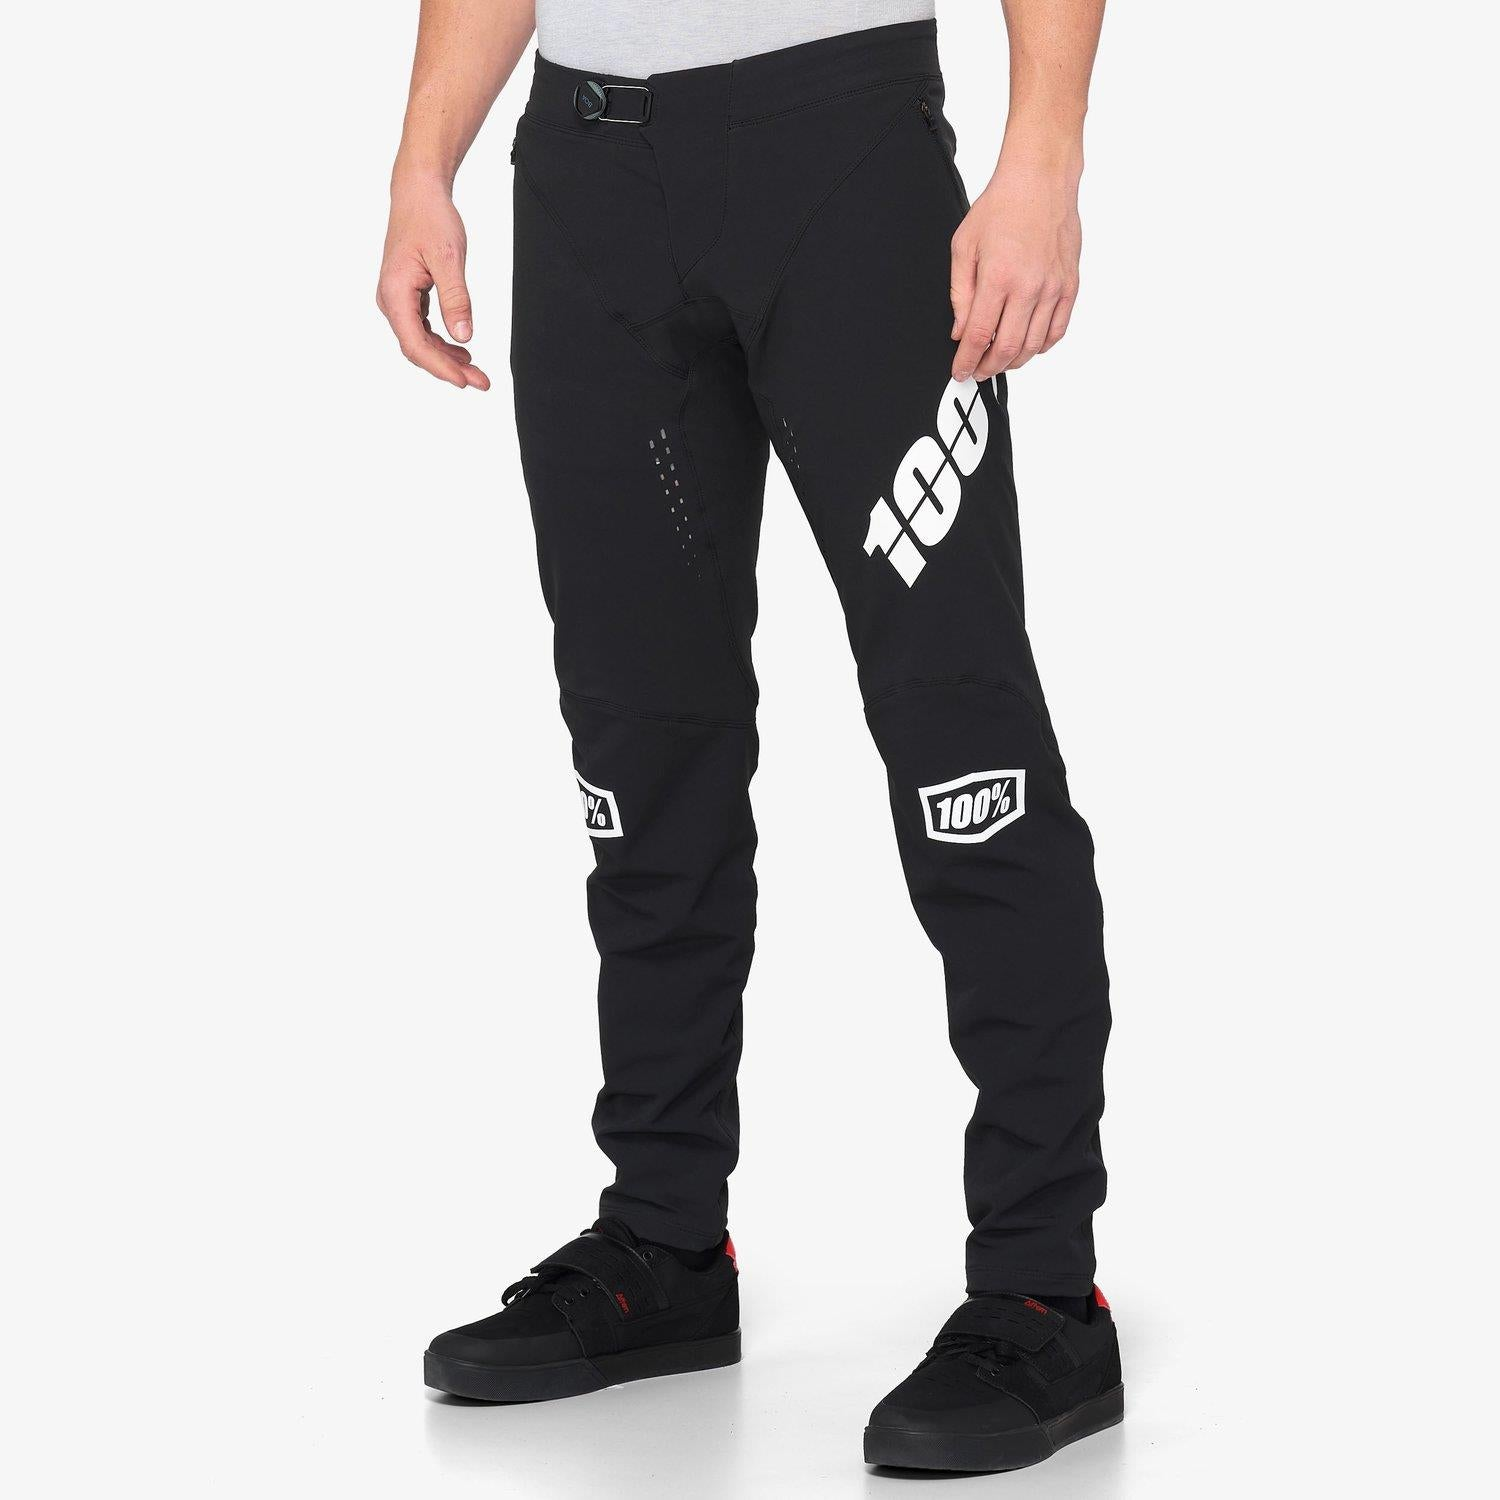 100% R-Core X Race Pants - Black